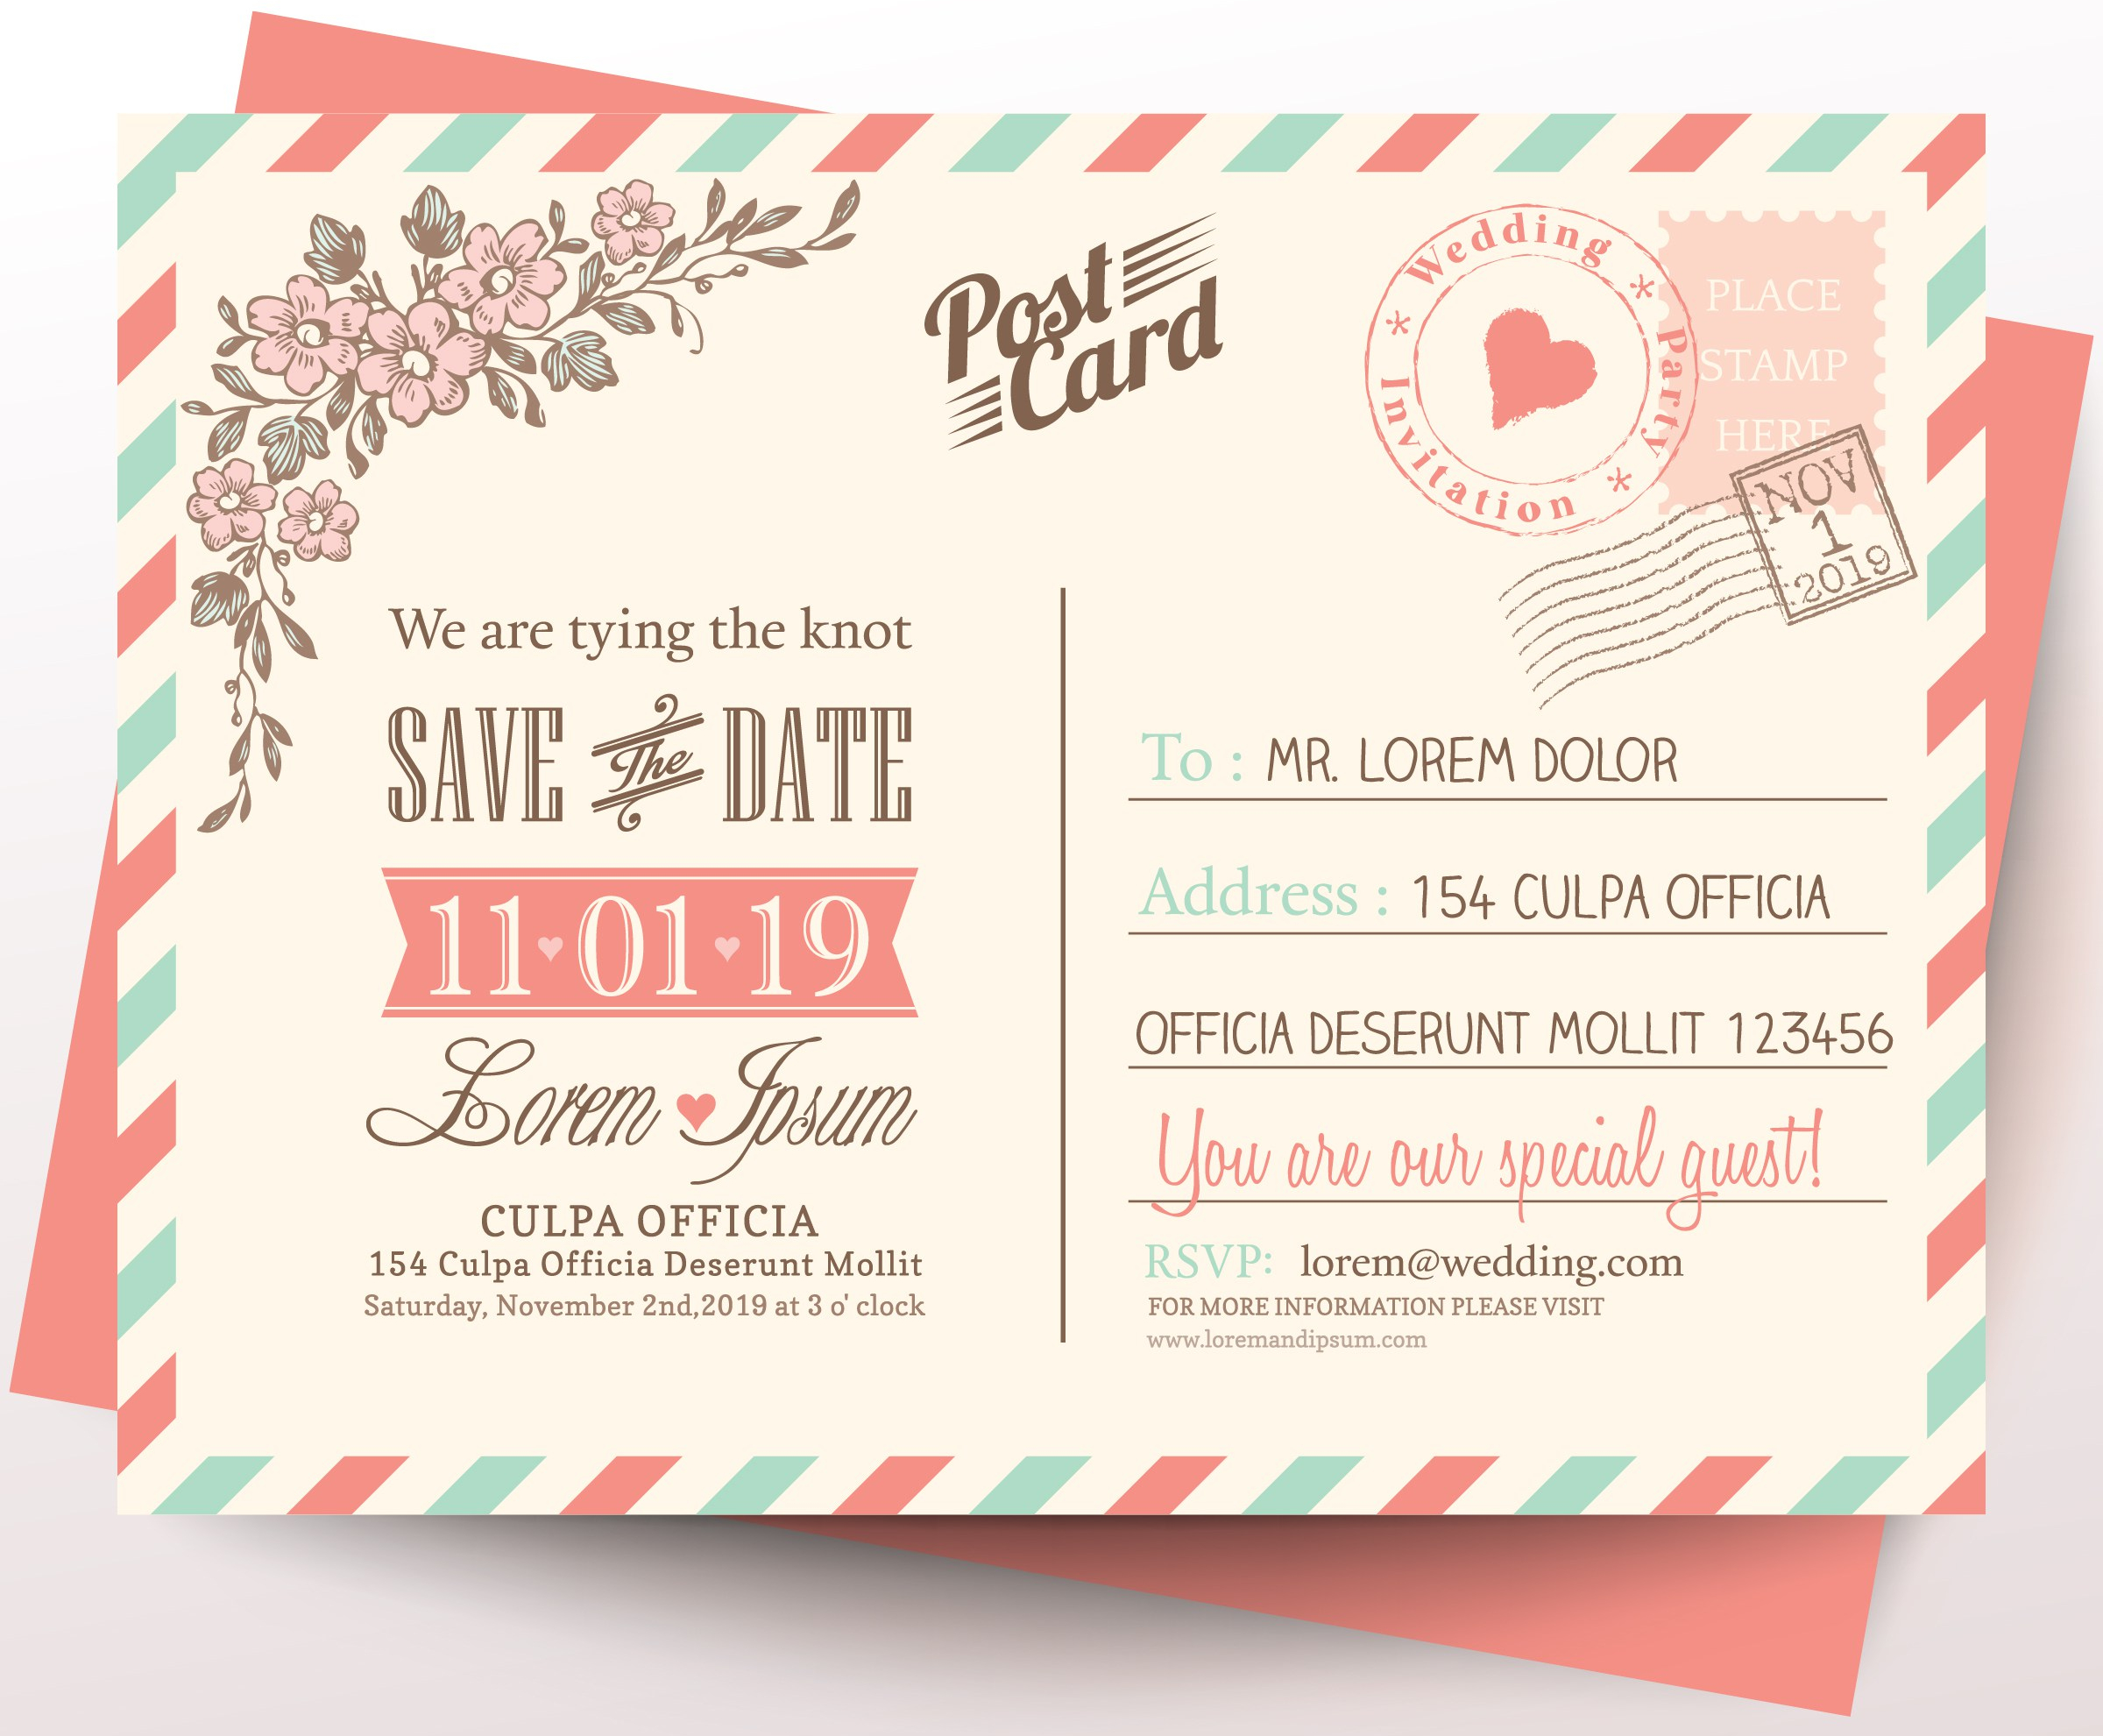 Vintage postcard wedding invitation background